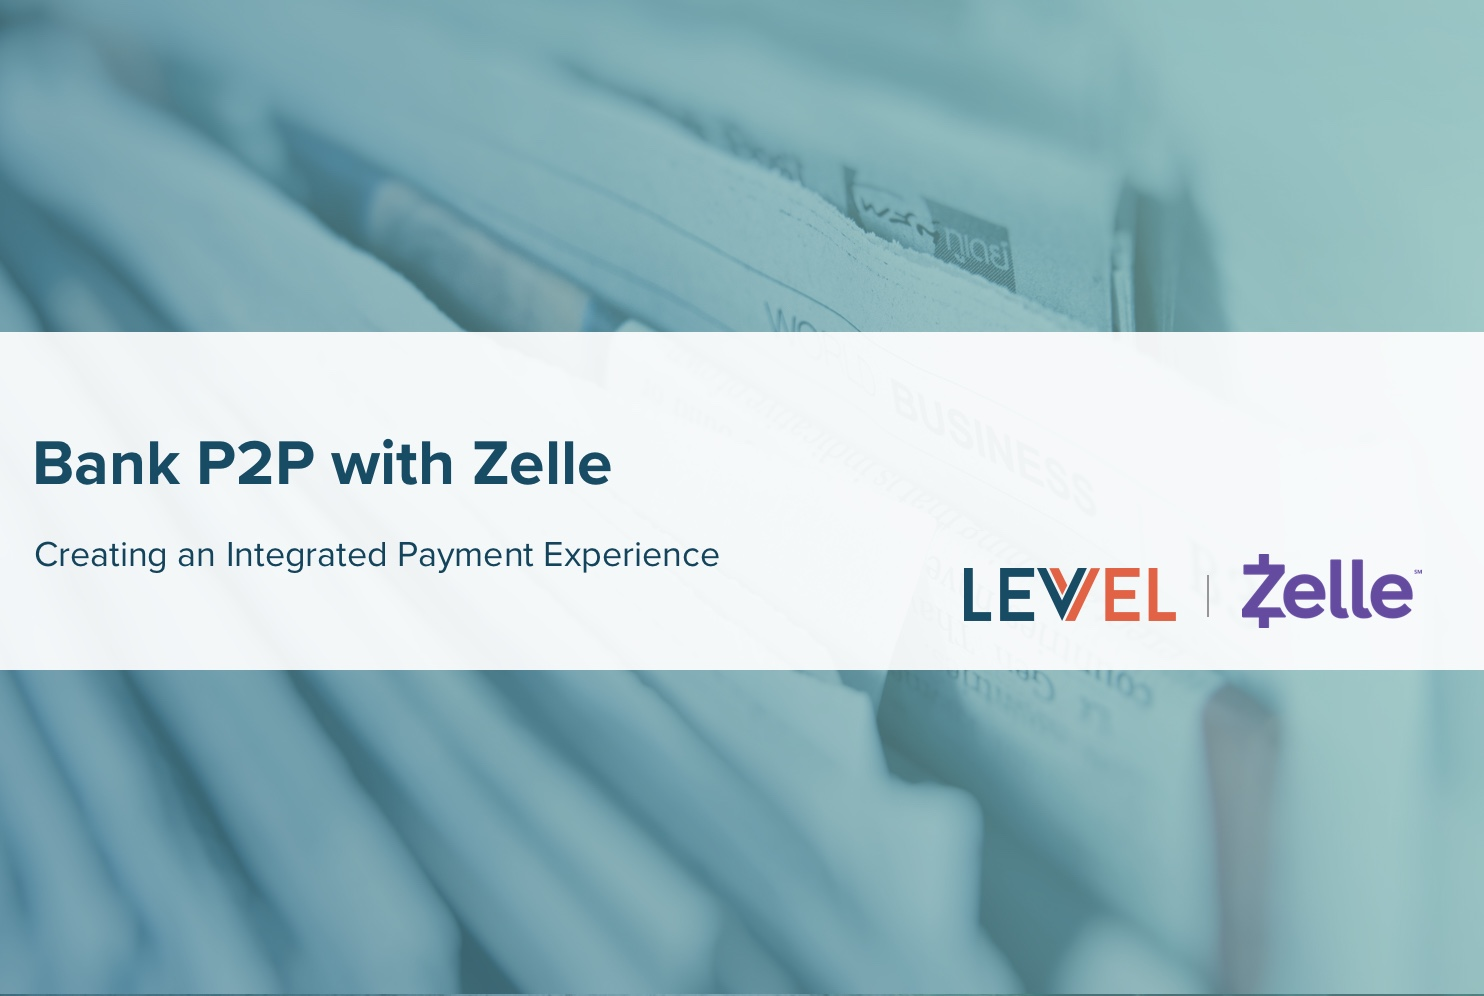 Bank P2P with Zelle